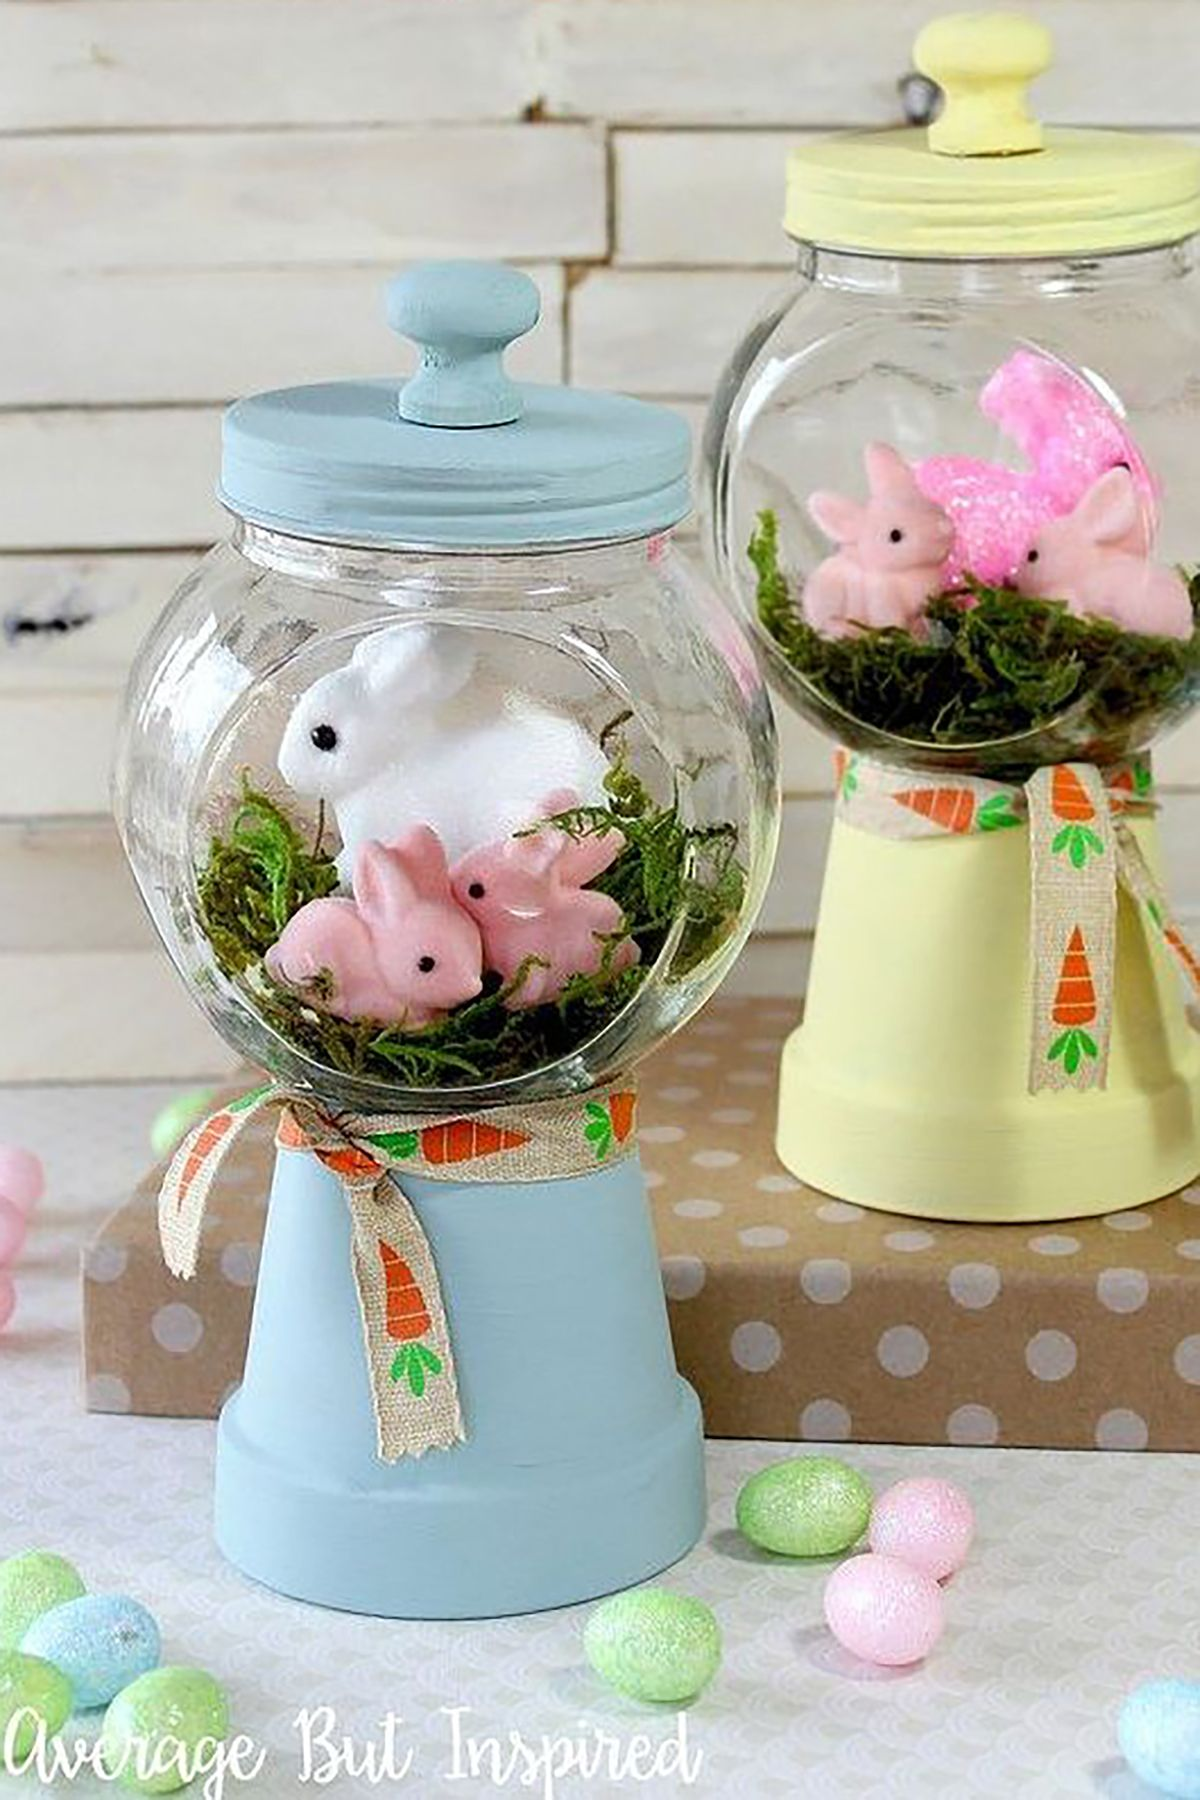 46 easy easter crafts ideas for easter diy decorations gifts 46 easy easter crafts ideas for easter diy decorations gifts country living negle